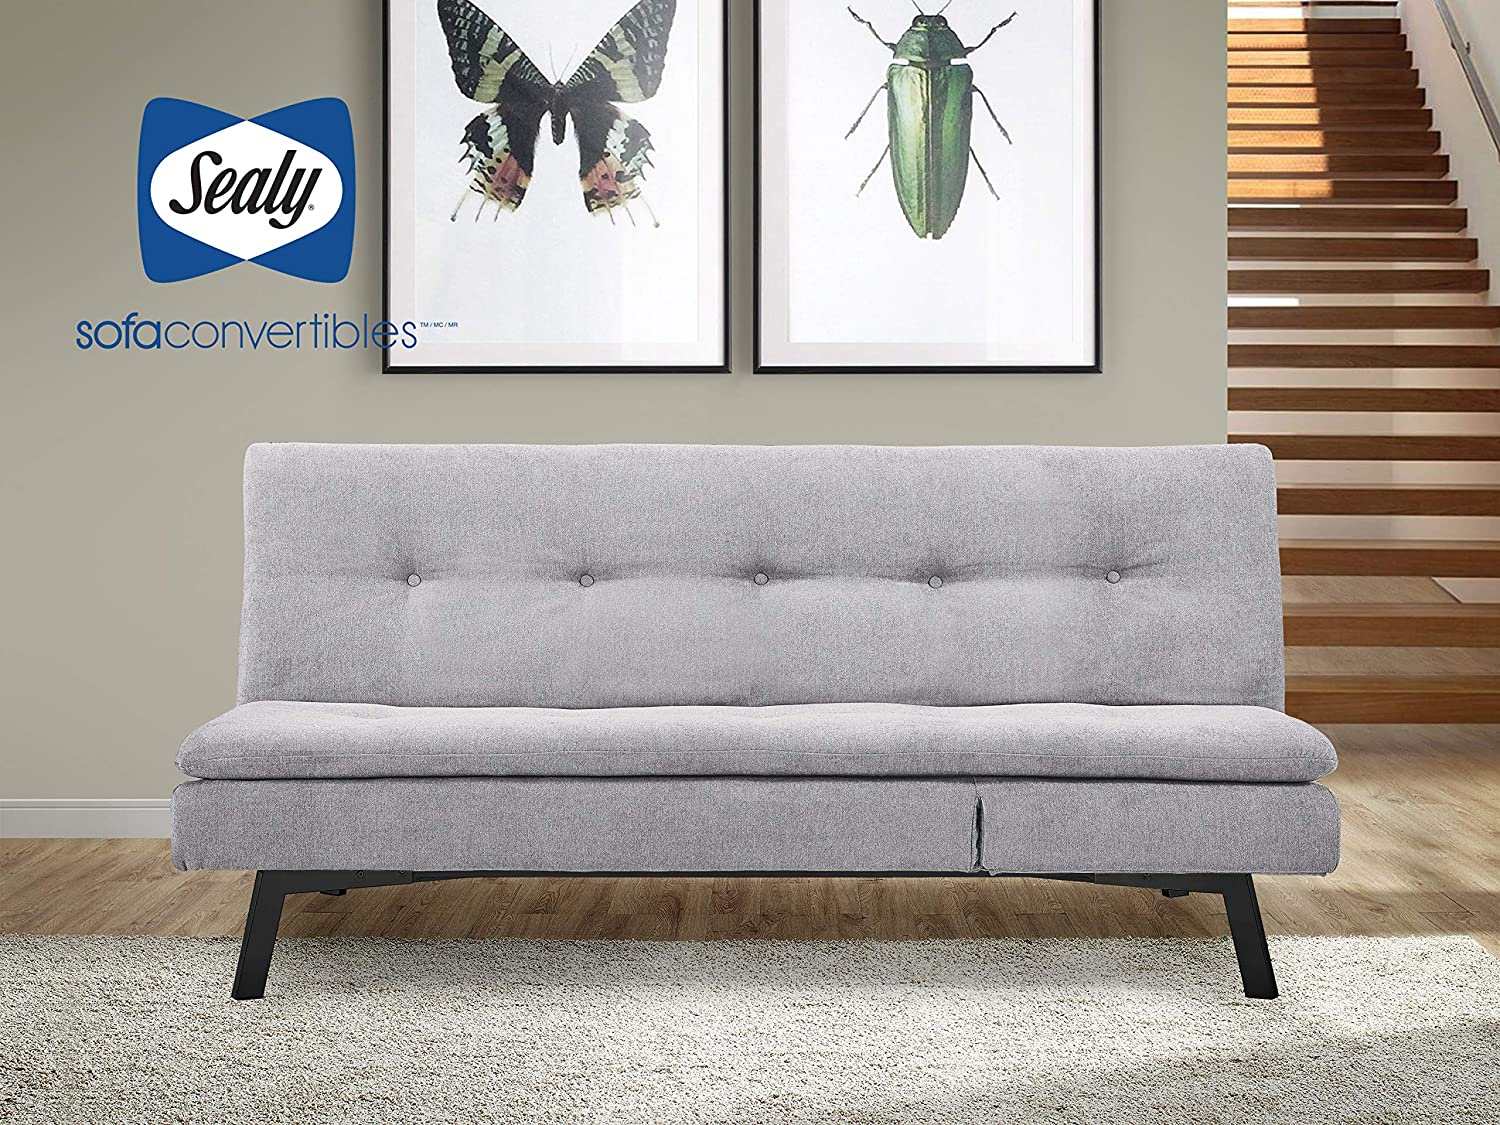 Sealy Savannah Transitional Convertible Chaise Sofa in Gray